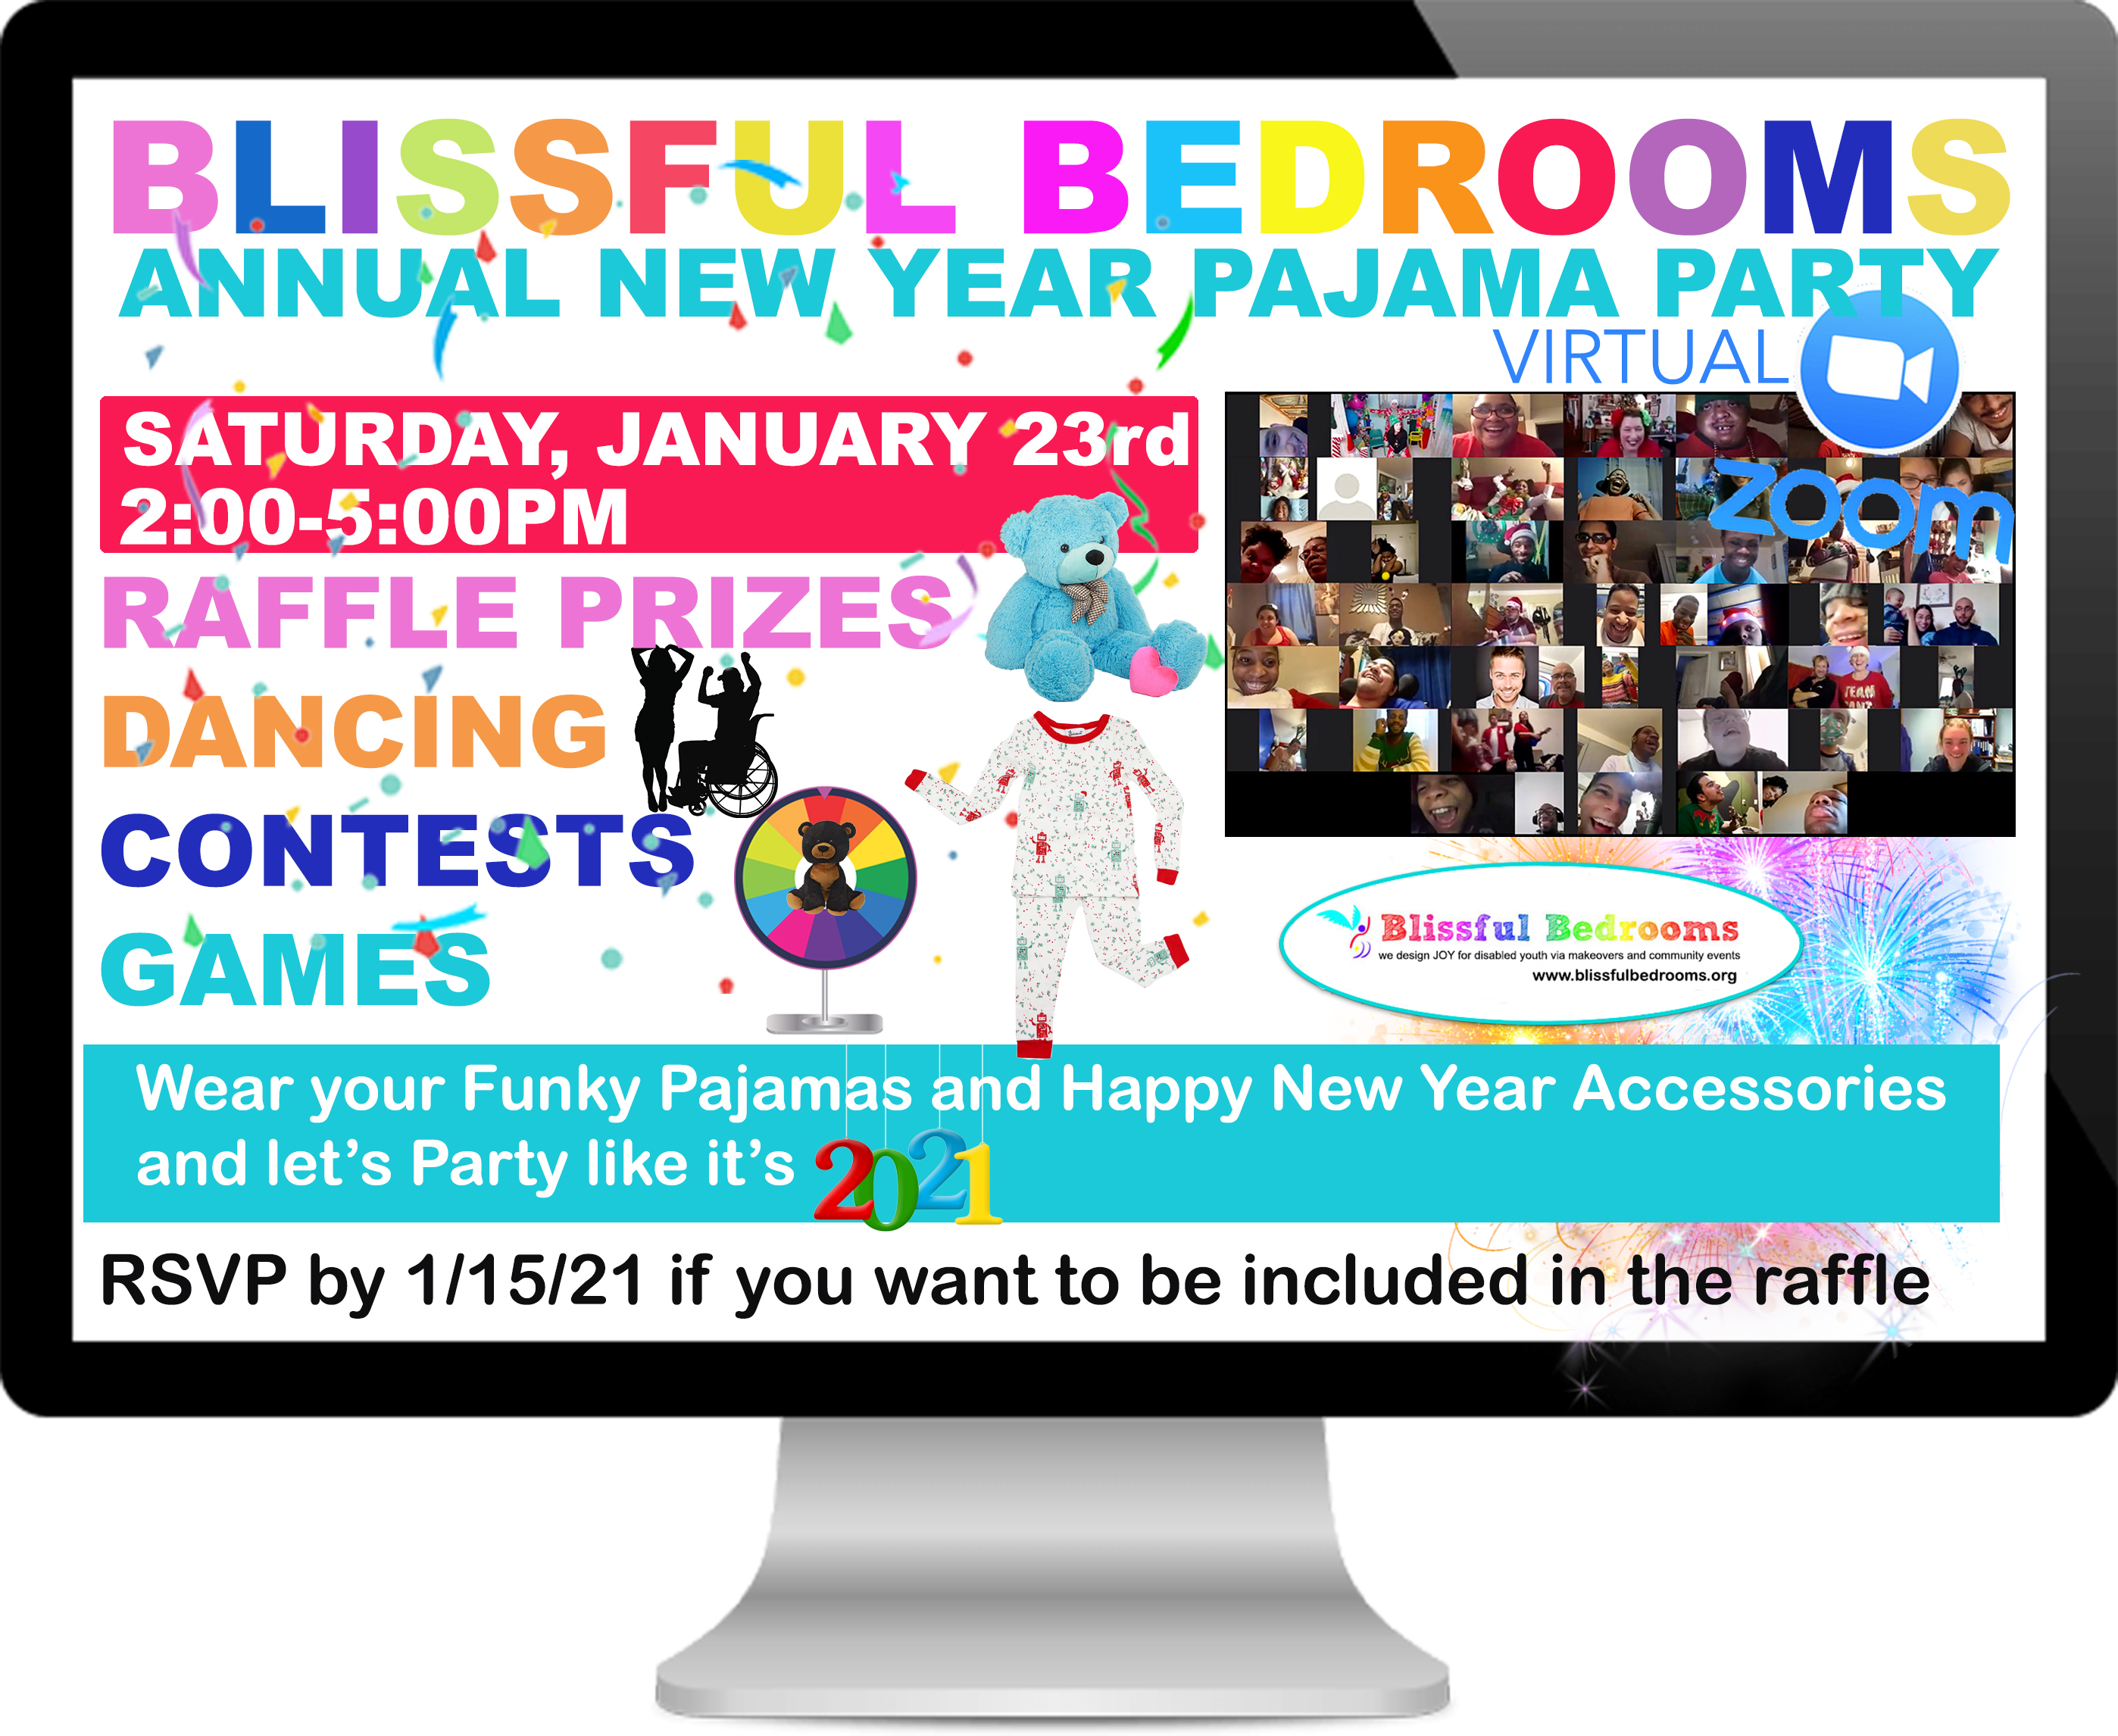 BB NEW YEAR PAJAMA PARTY ZOOM 2021 FLYER